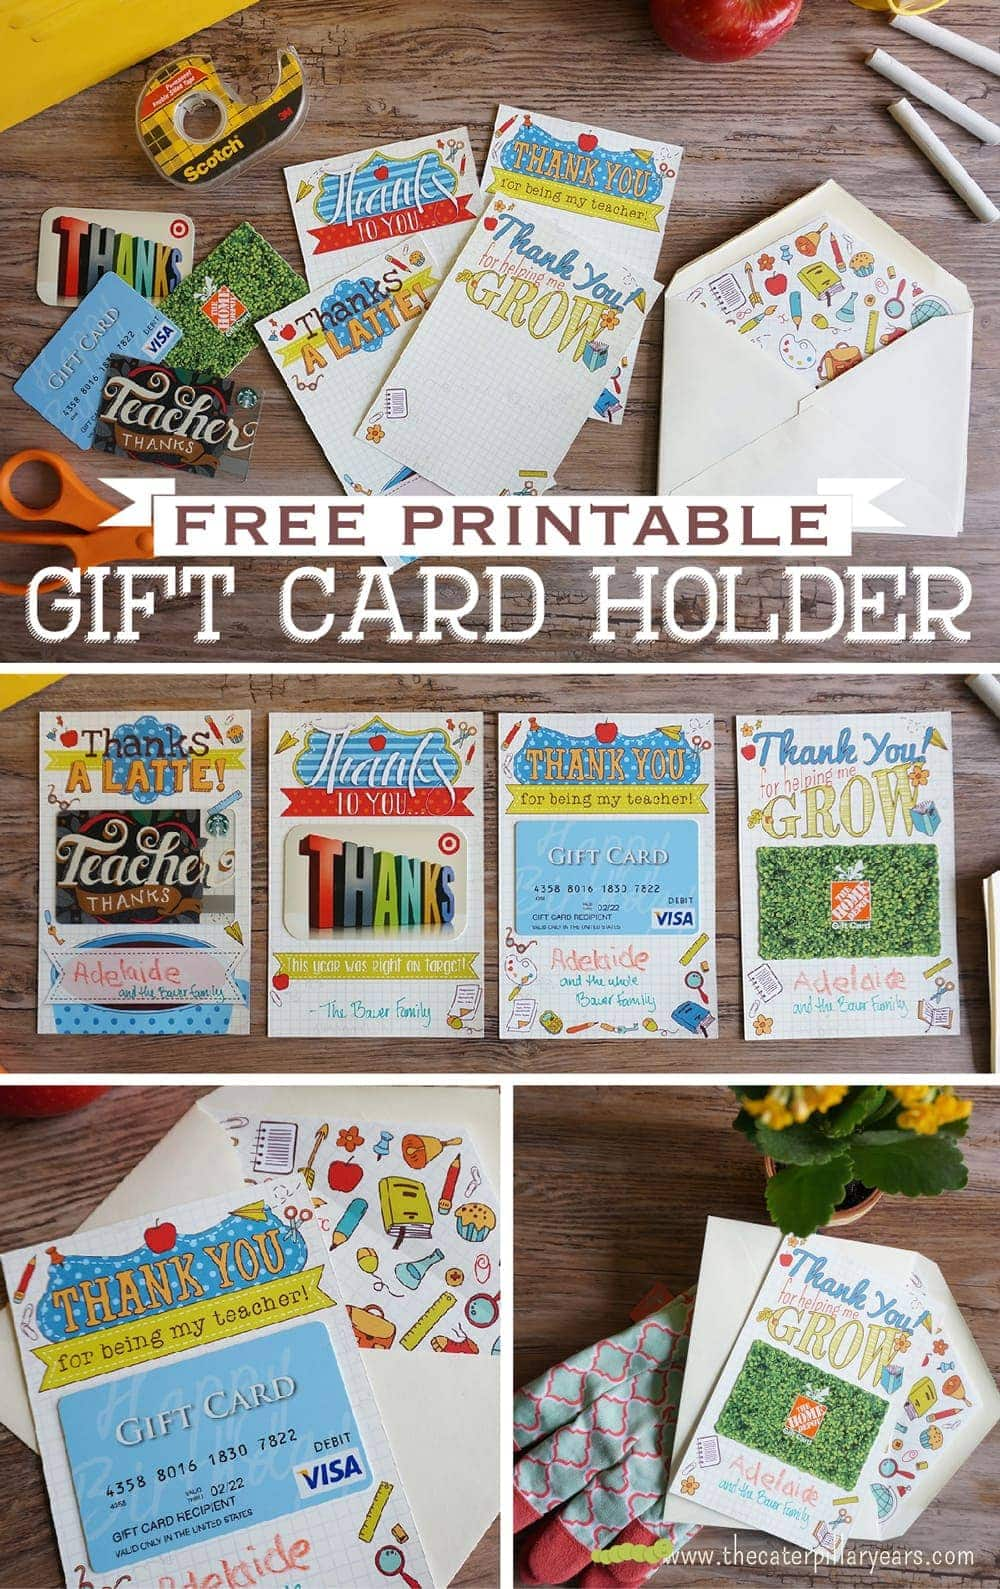 Free Printable Gift Card Holder for Teachers! Great end-of-year gift ...